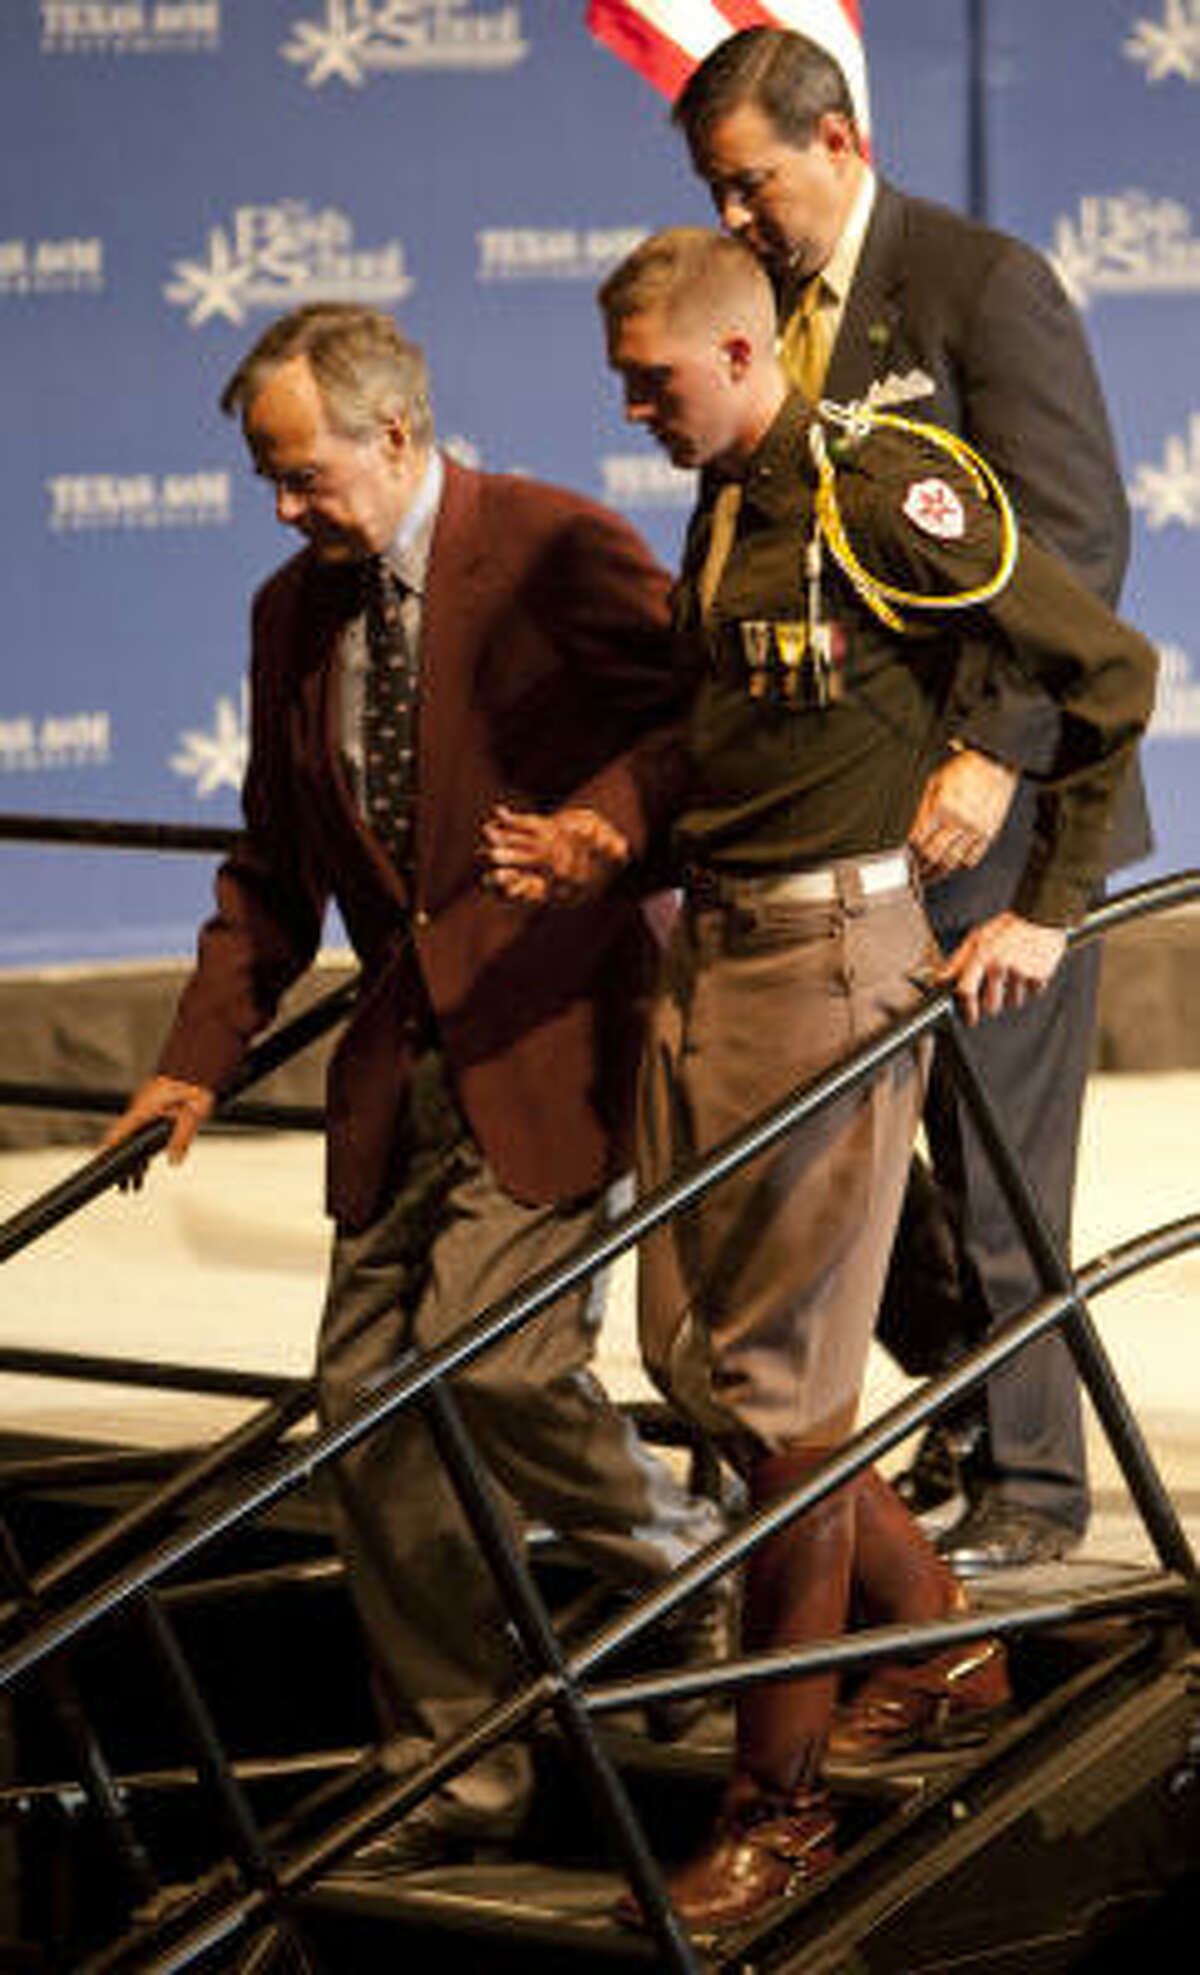 President George Bush is assisted by a Cadet as he walks to his seat during the 20th Anniversary Commemoration of the beginning of military operations to liberate Kuwait.